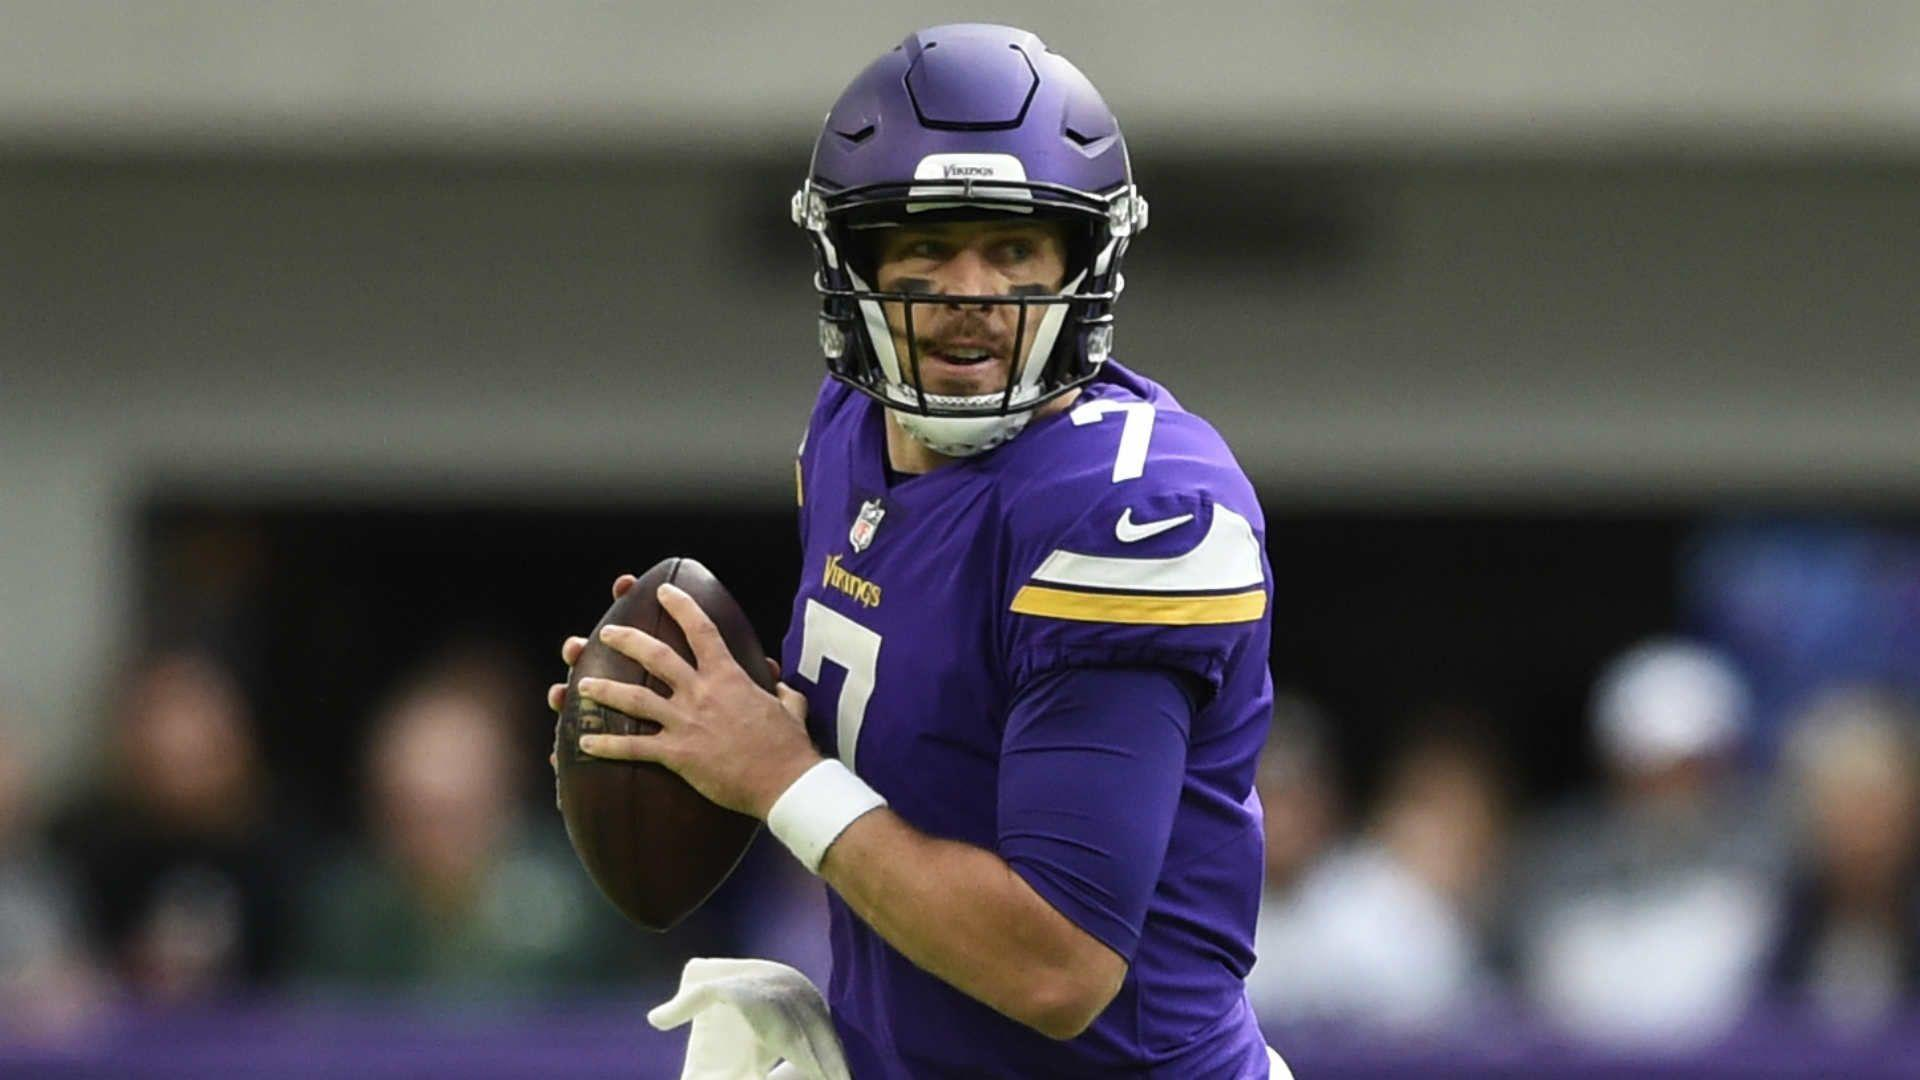 Vikings stick with Case Keenum as starting QB vs. Rams | NFL ...